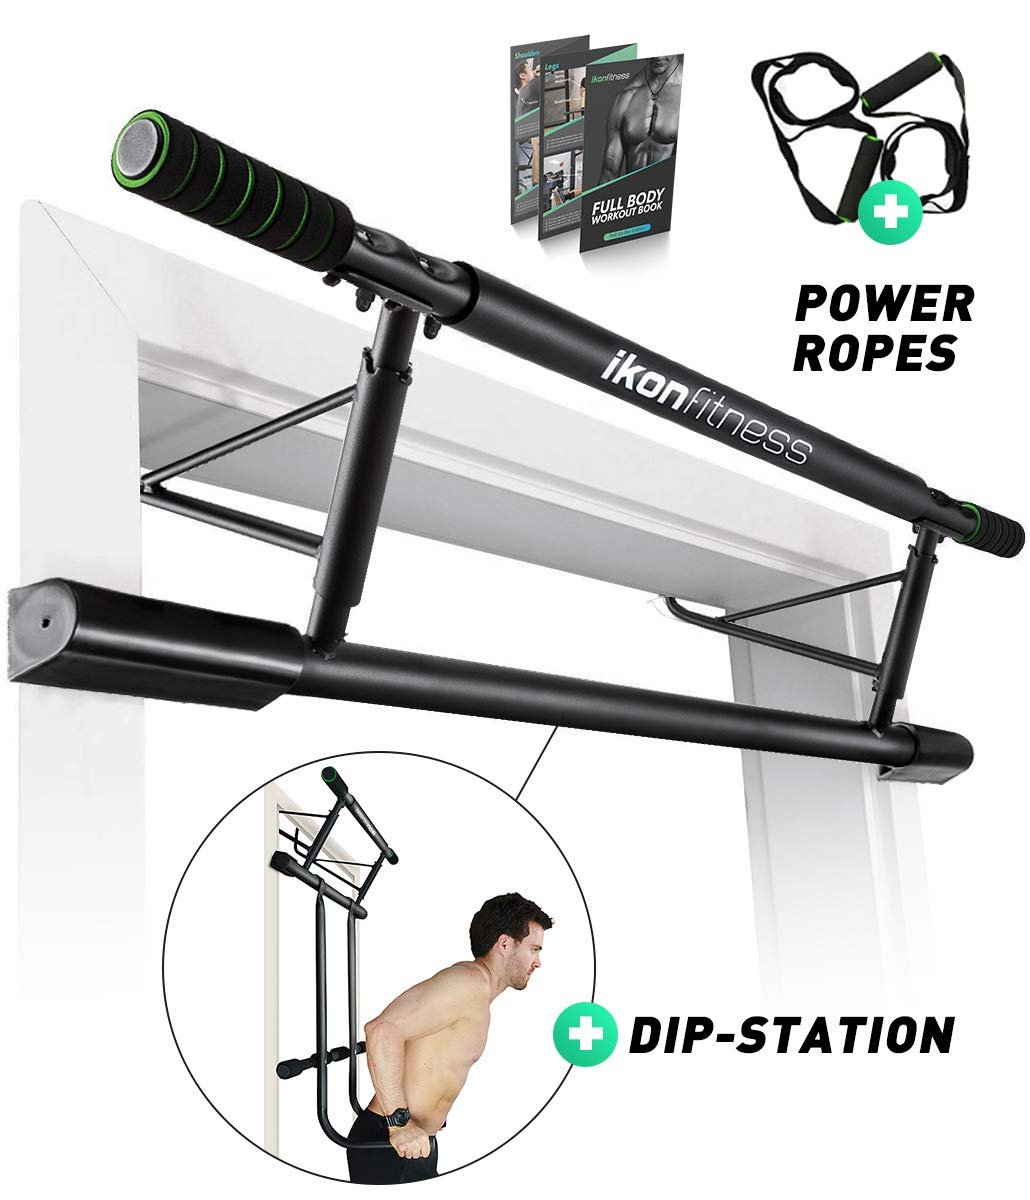 Ikonfitness Ultimate 4 in 1 Doorway Trainer Raised Height Pull Up Bar, Dips Bar Power Ropes for A Total Body Home Workout – USA Original Patent, USA Designed, USA Shipped, USA Warranty